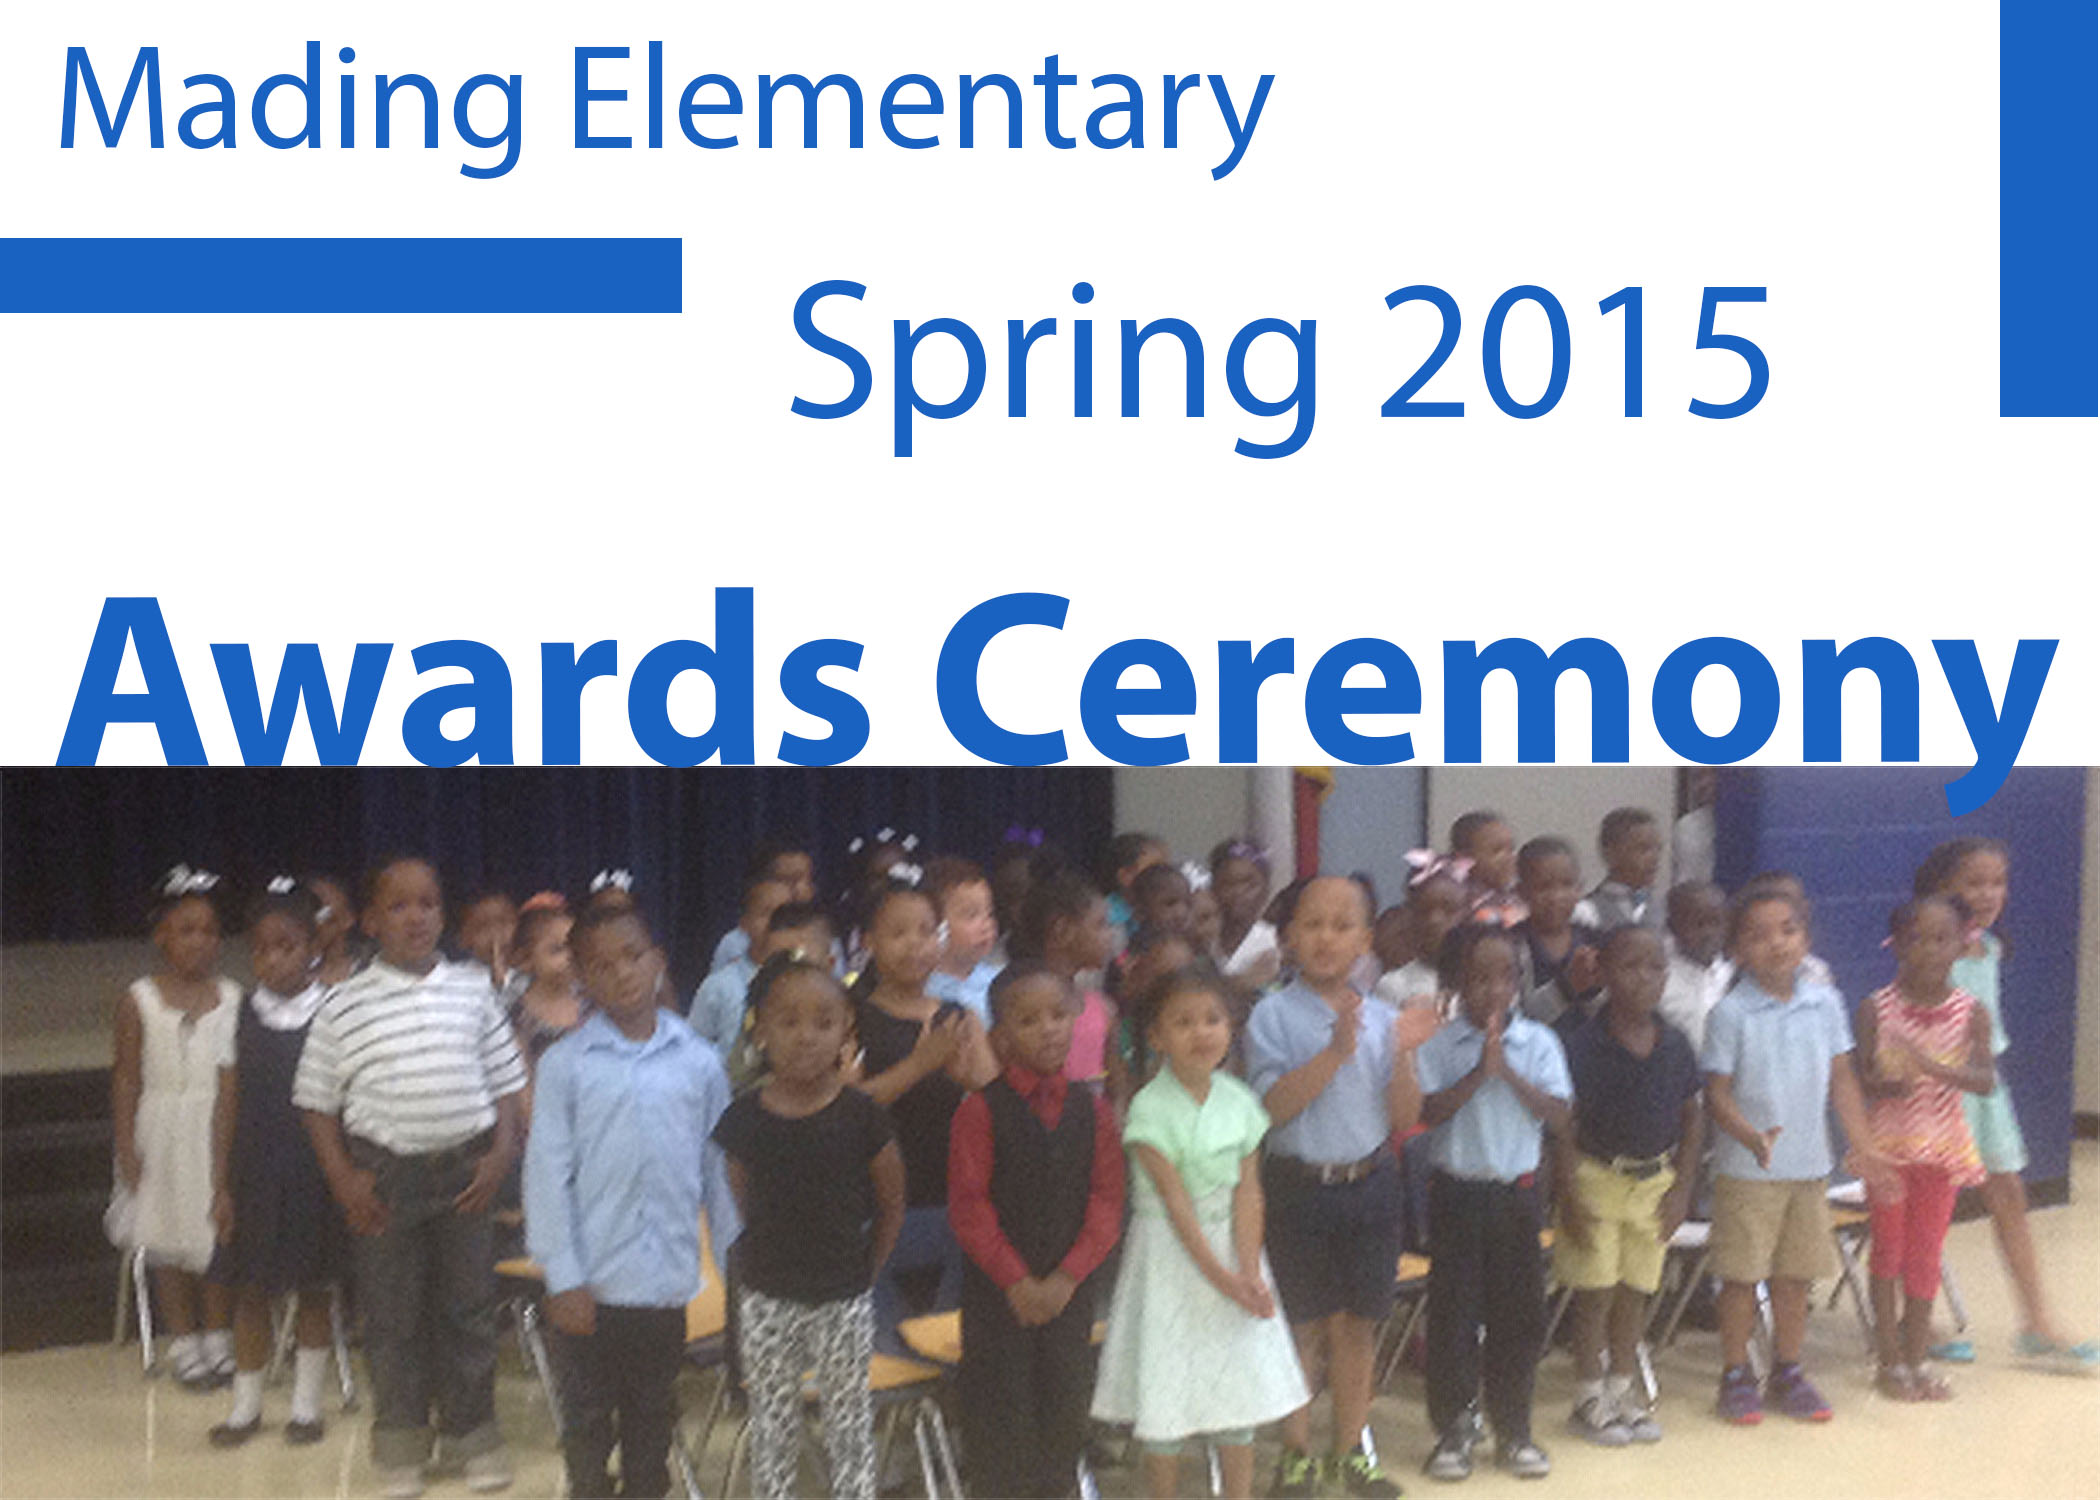 Spring 2015 Awards Ceremony